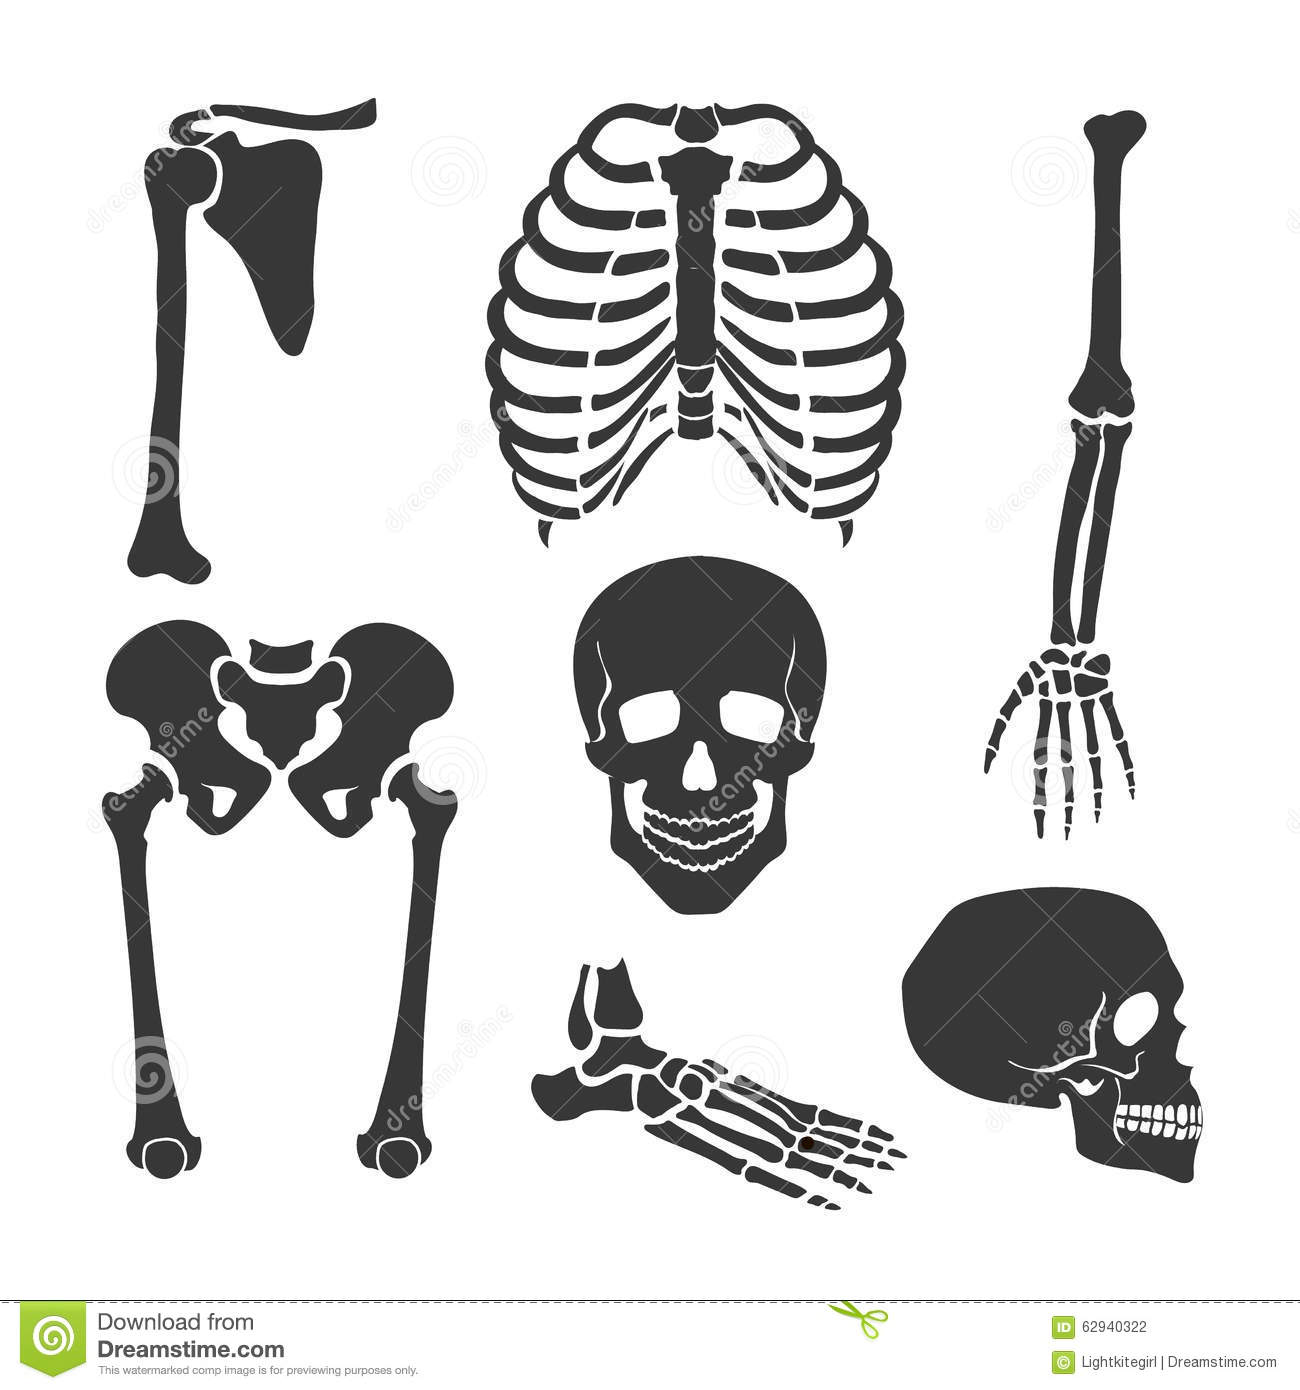 Human Skeleton Vector Black Illustration Set Stock Vector